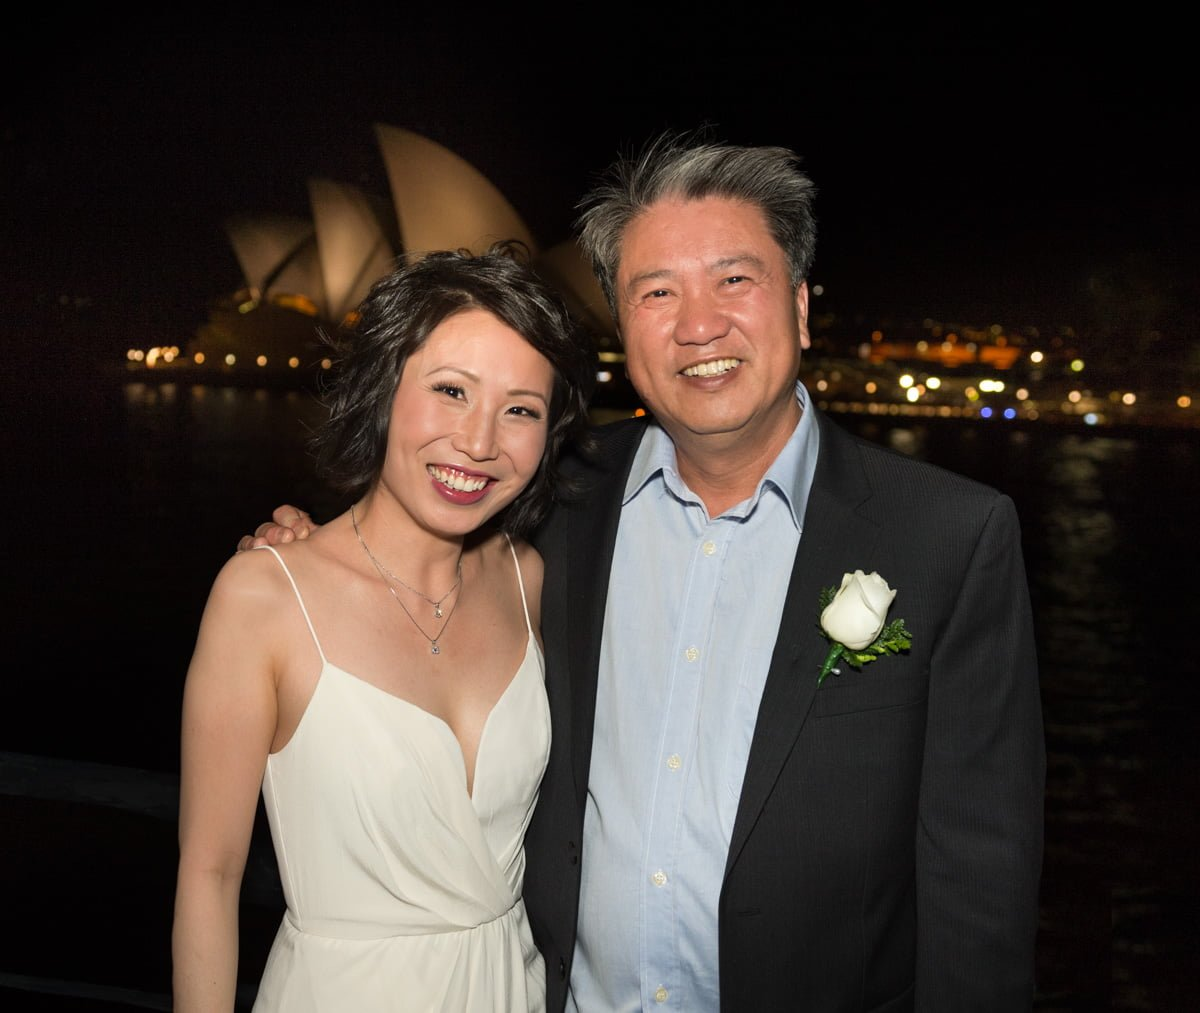 bride and her father at reception at Quay Restaurant